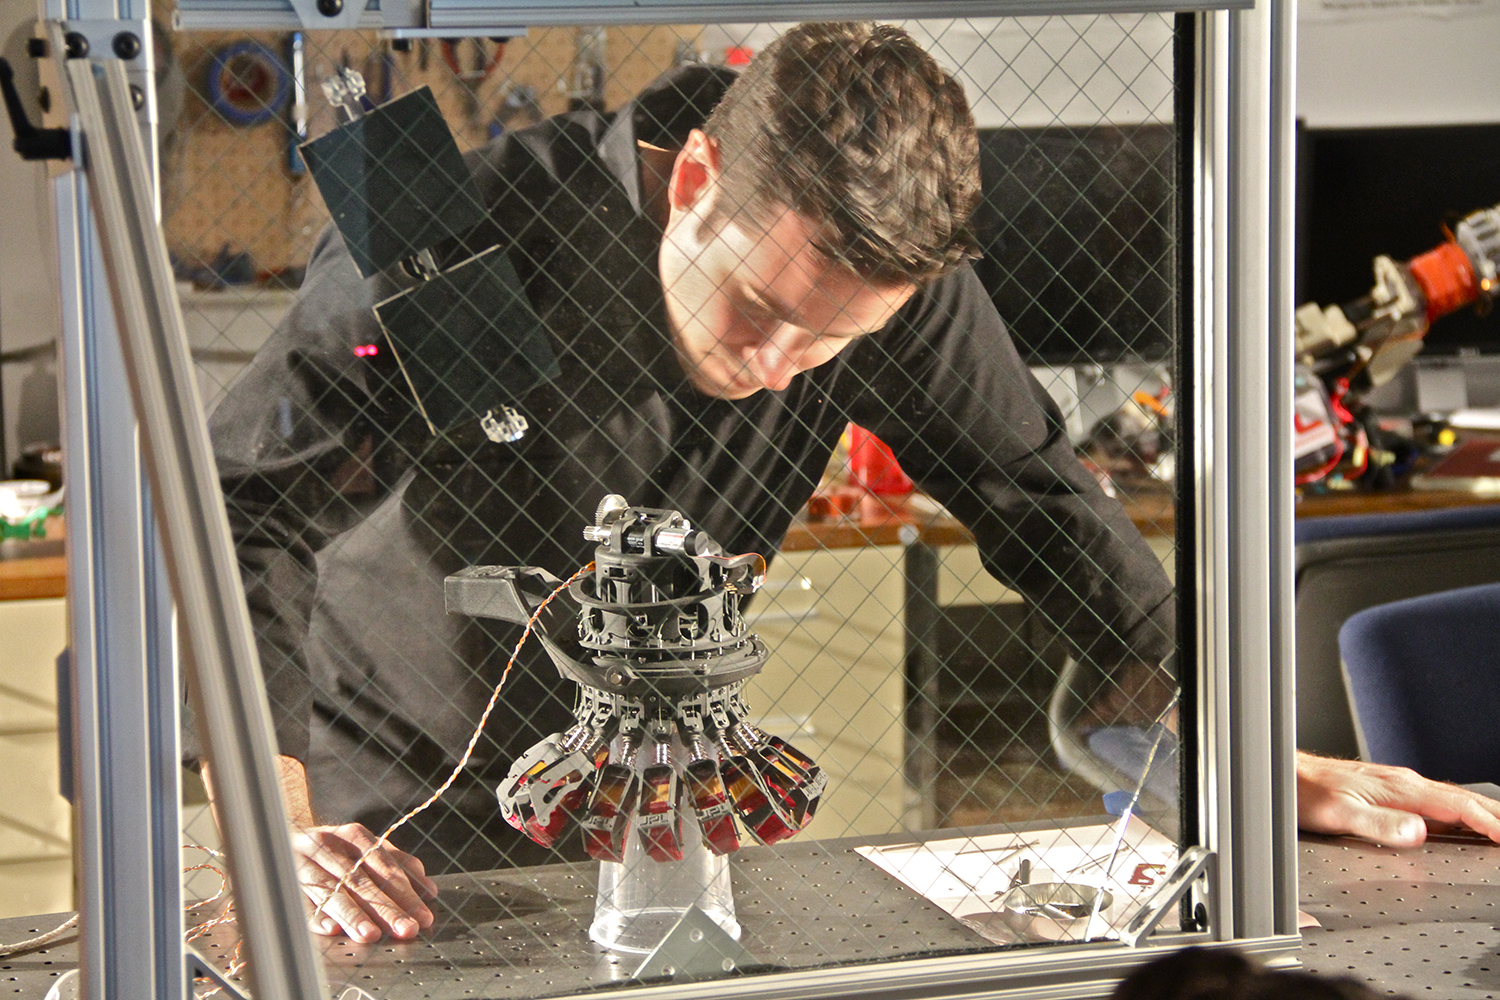 Jet Propulsion Laboratory – Group Leader, Aaron Parness working in his lab with a robotic microspine anchor 1. Credit: Rachael Joy/Science Channel